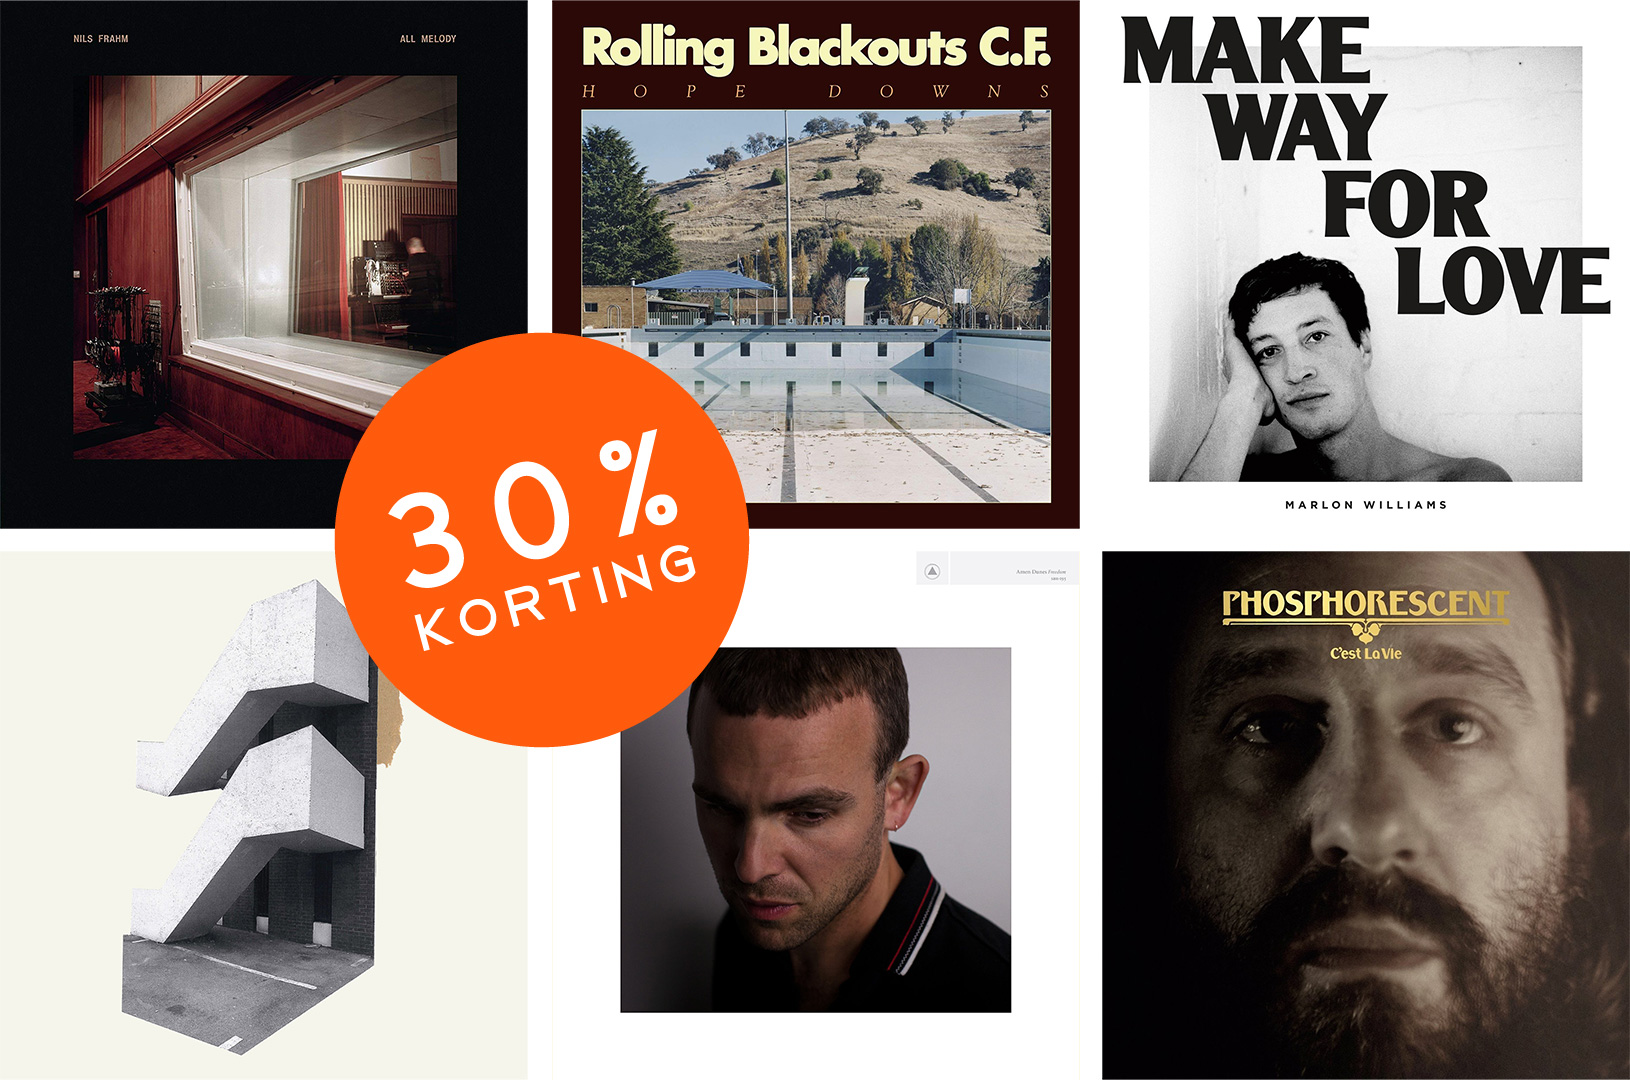 Velvet December Actie | 30% korting | Amen Dunes | Damien Jurado | Marlon Williams | Nils Frahm | Phosphorecent | Rolling Backouts